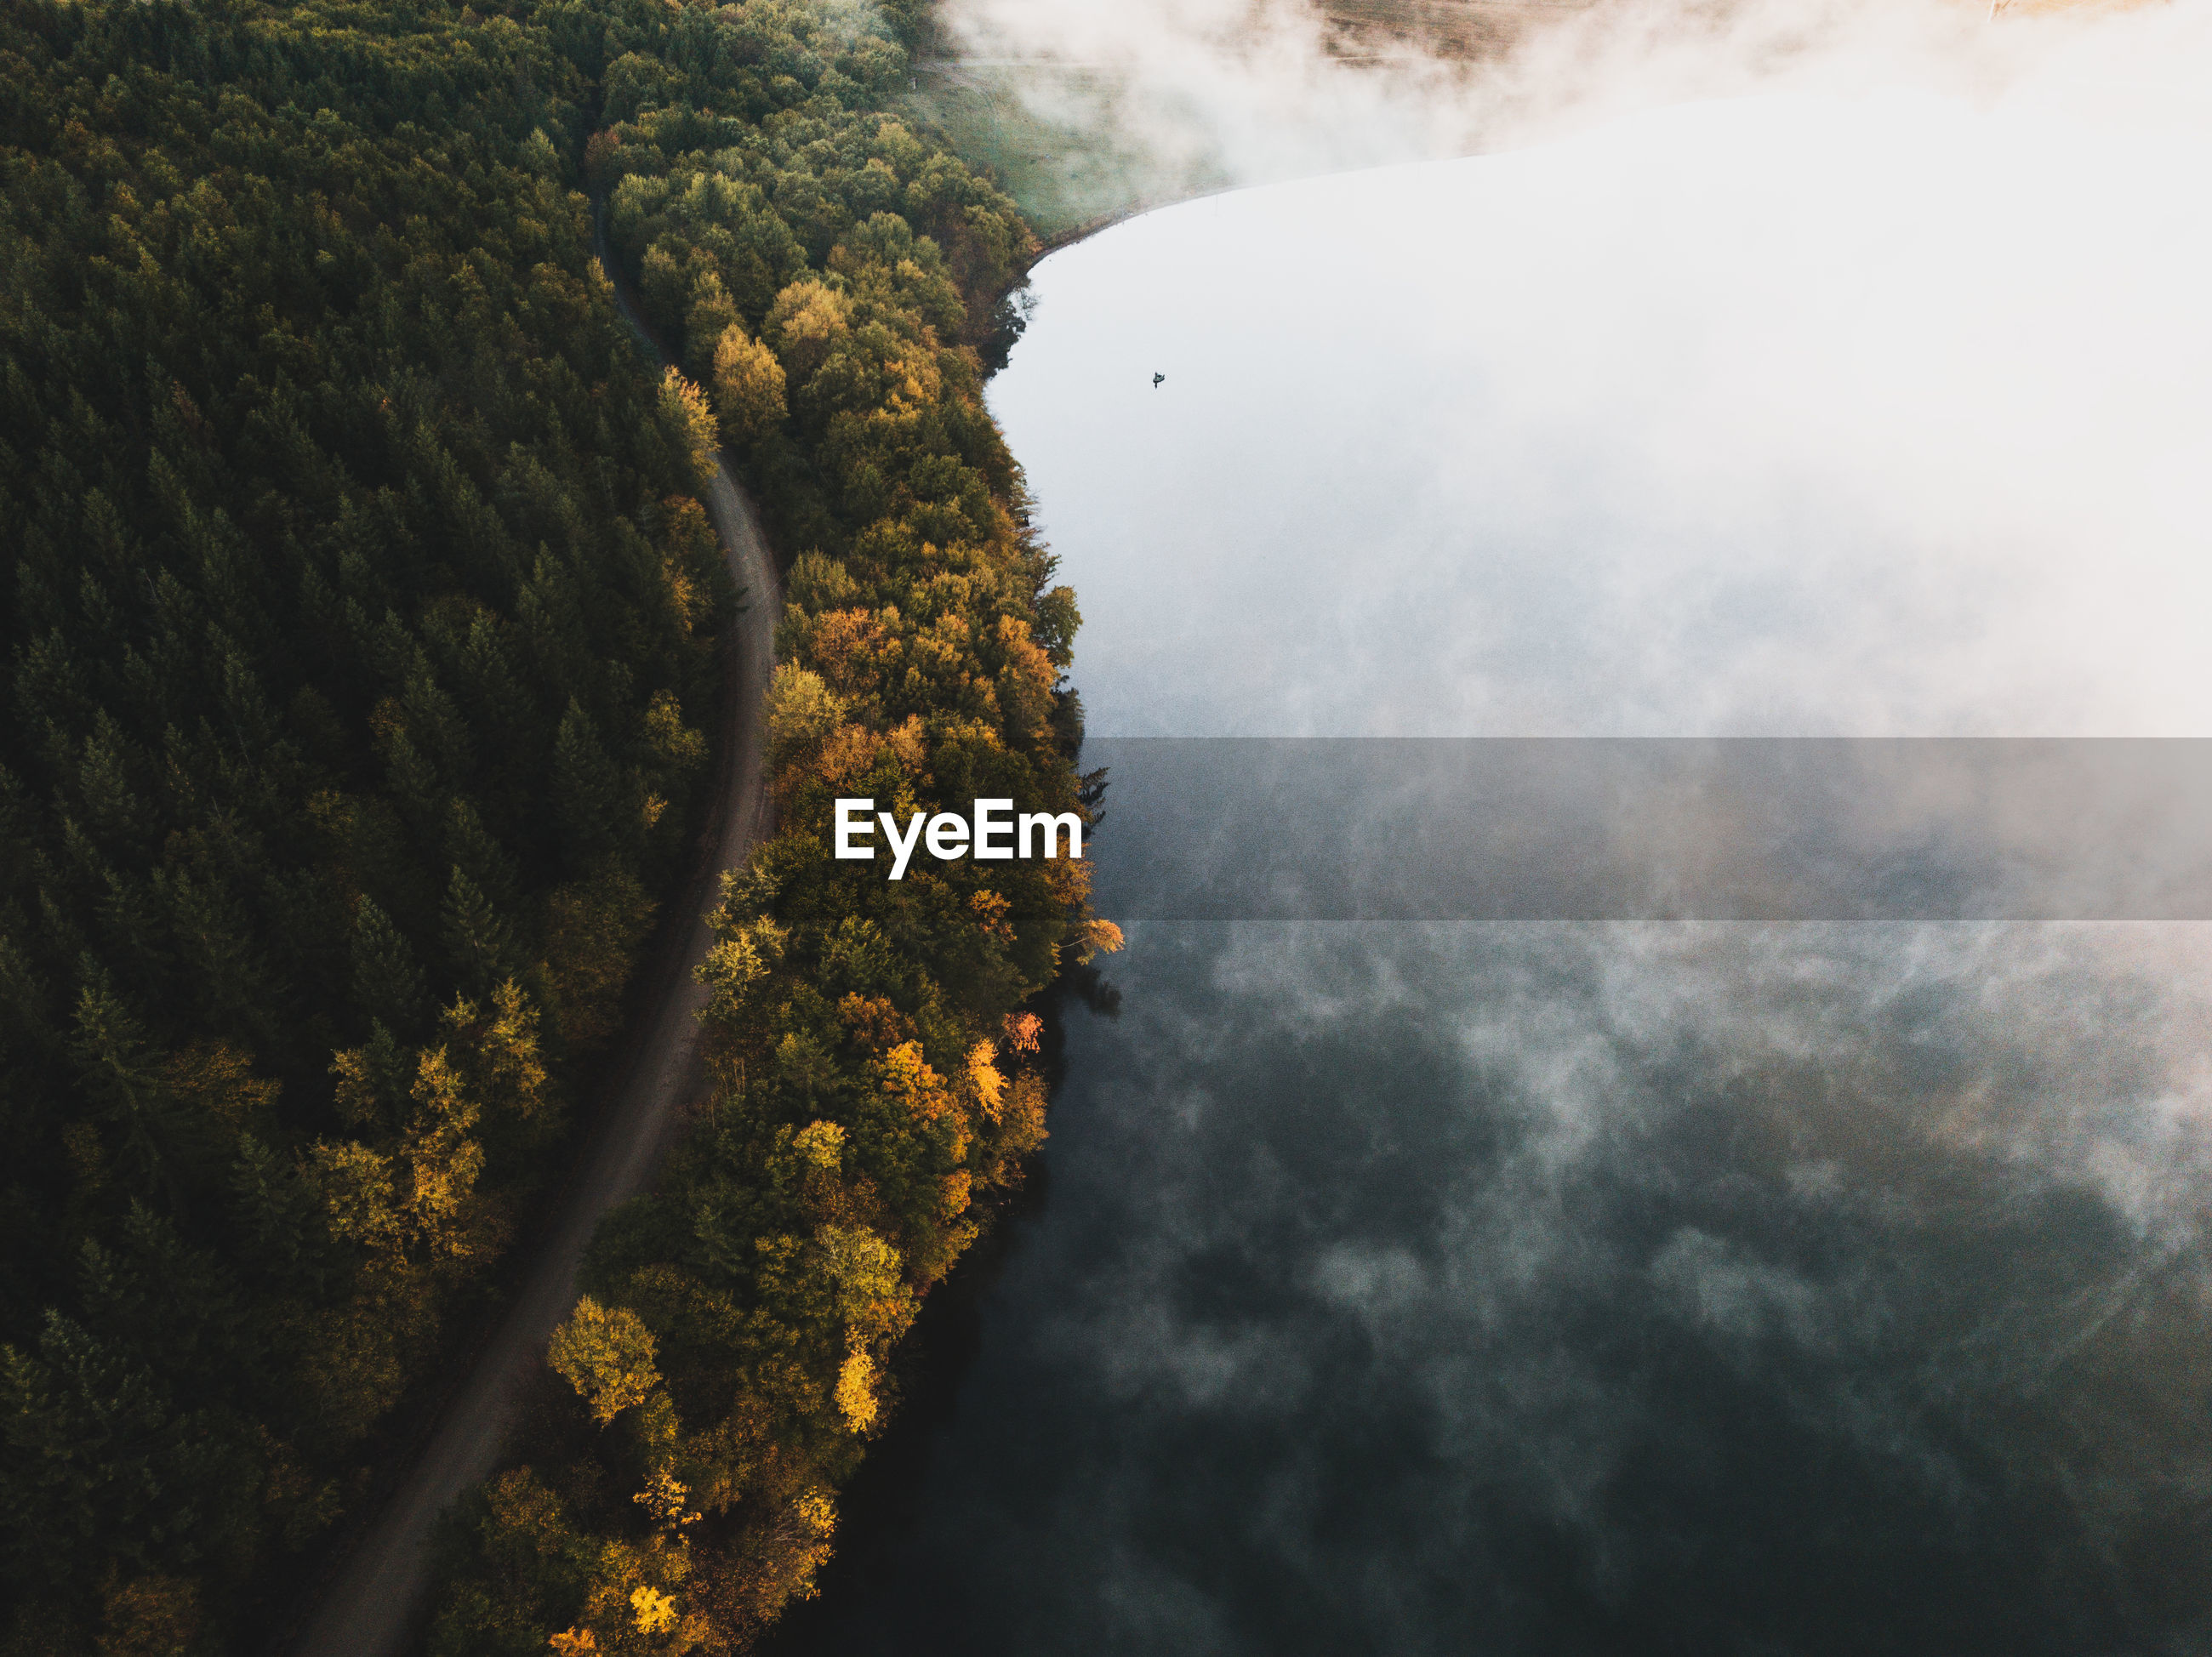 Aerial view of autumn forest by lake during foggy weather